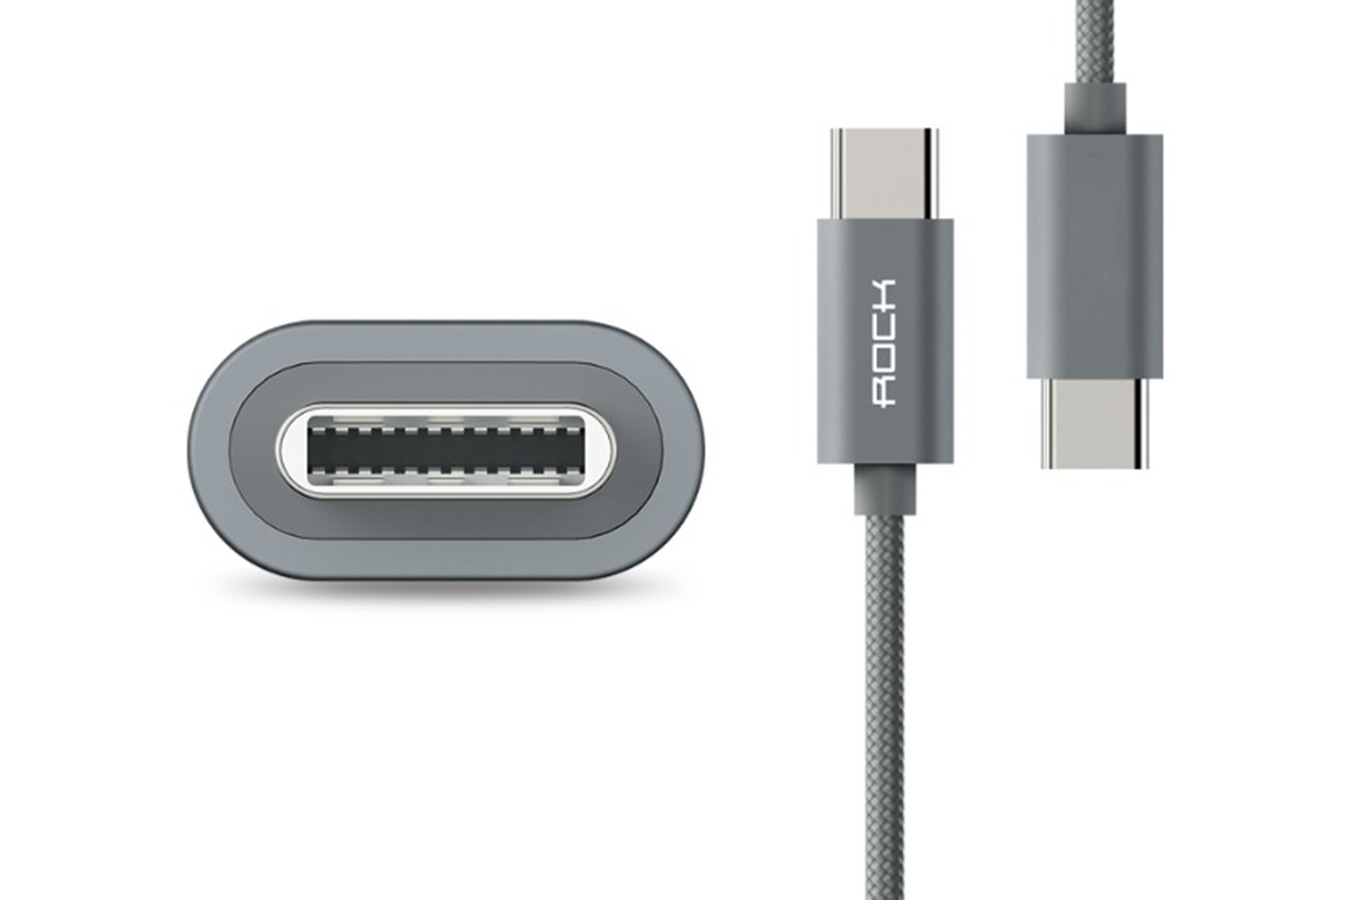 Кабель Rock C2 USB Type-C серого цвета